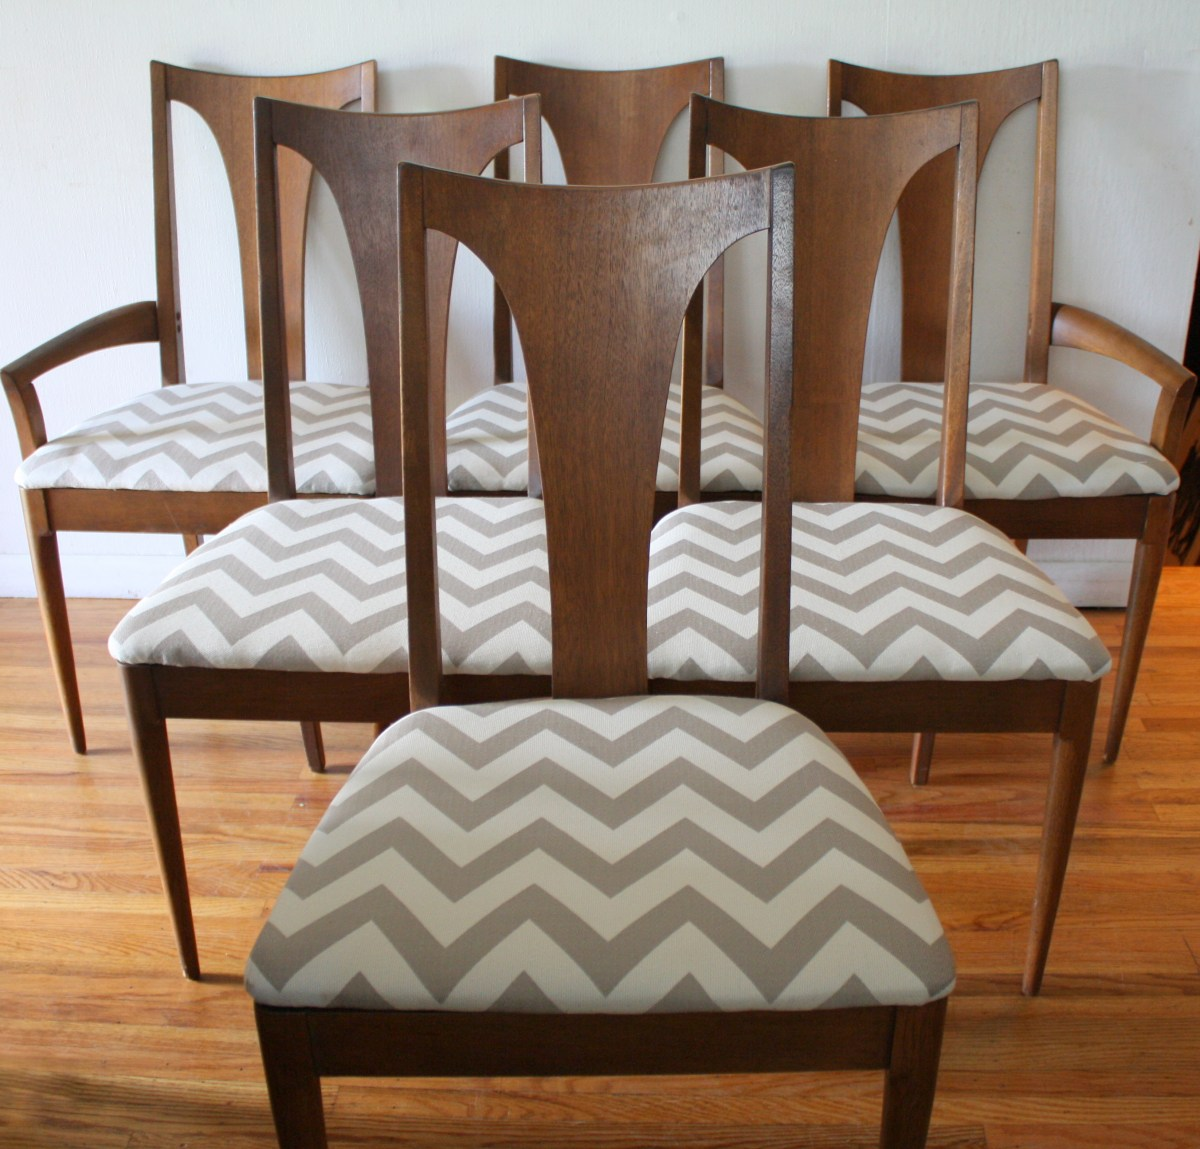 Mid Century Dining Chairs Mid Century Modern Dining Chair Set From The Broyhill